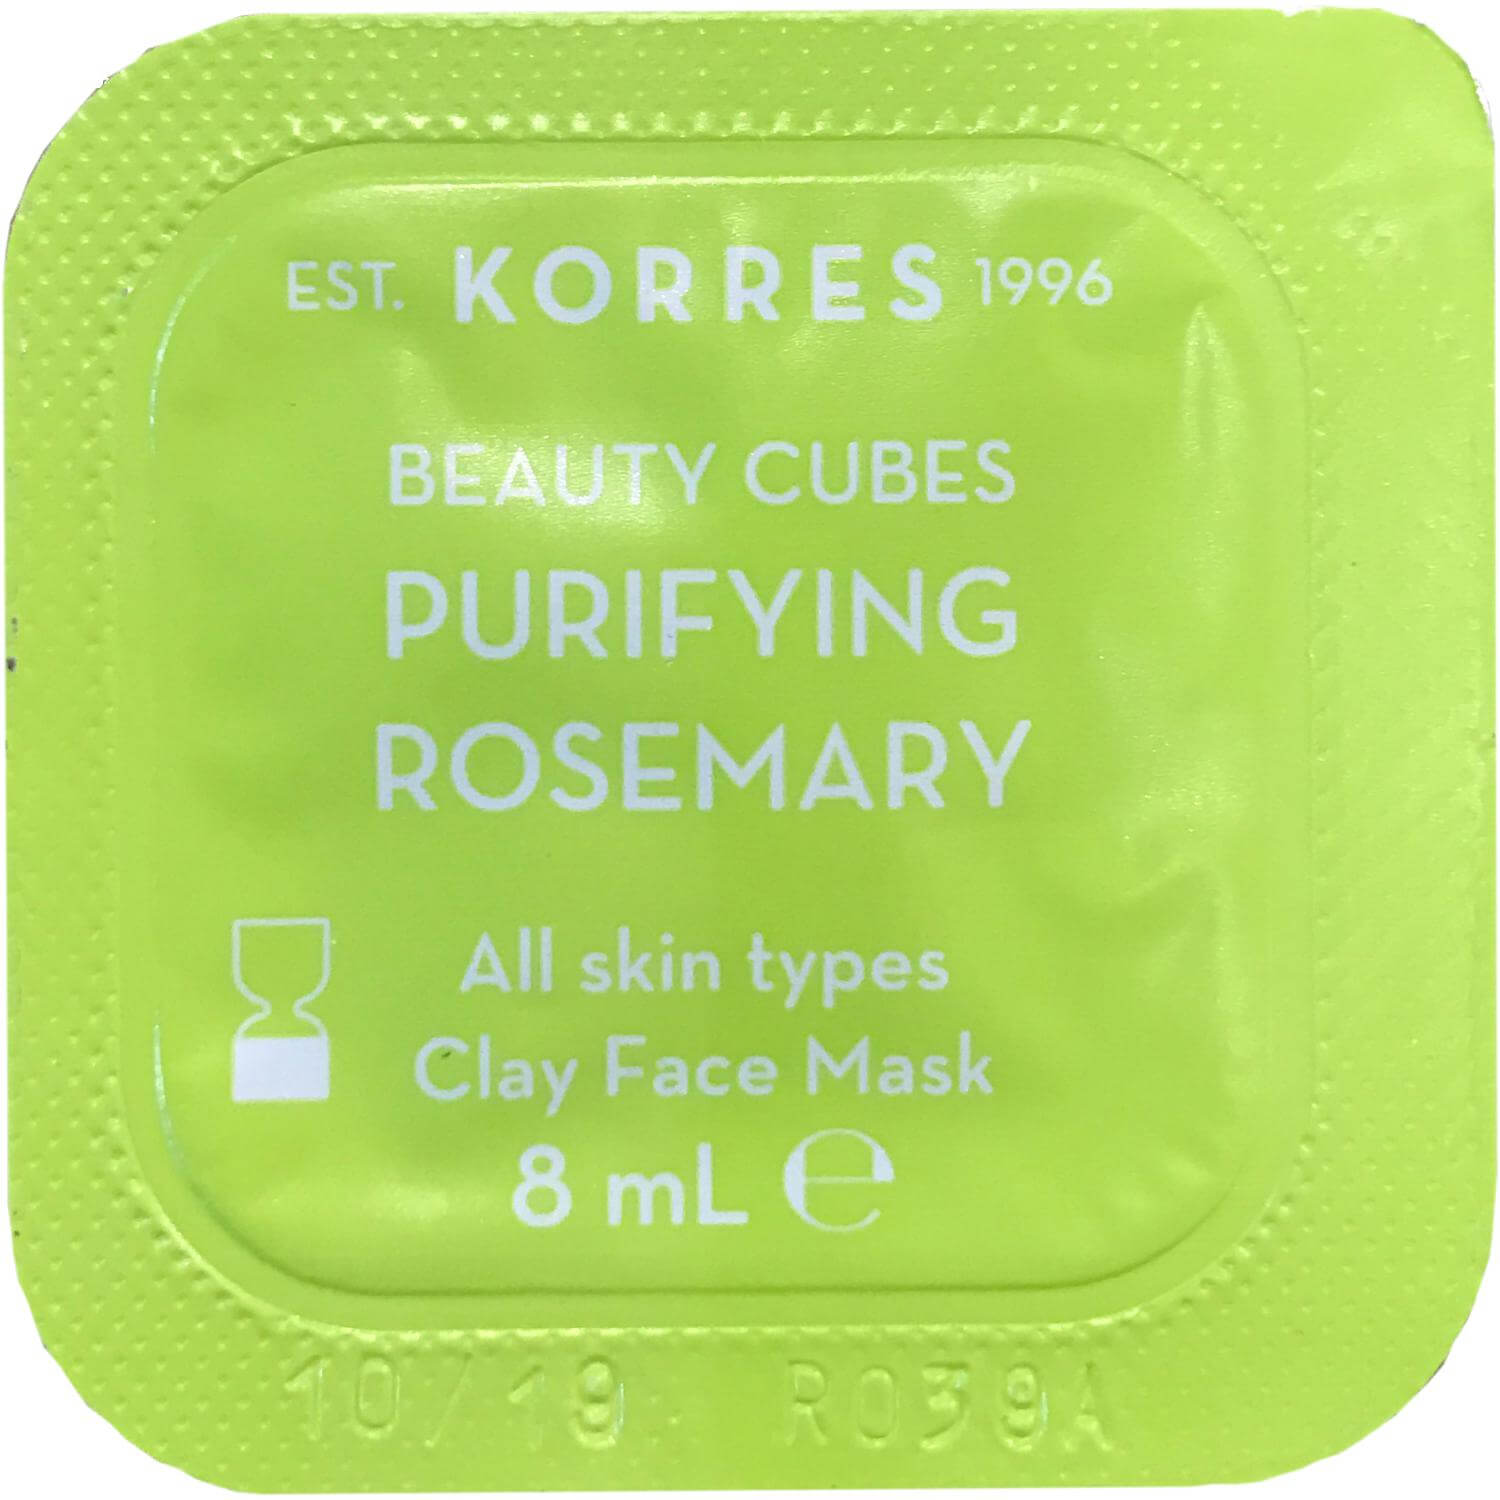 Korres Beauty Cubes Purifying Rosemary Clay Face Mask Mάσκα Πηλός για Βαθύ Καθαρισμό με Δενδρολίβανο 8ml